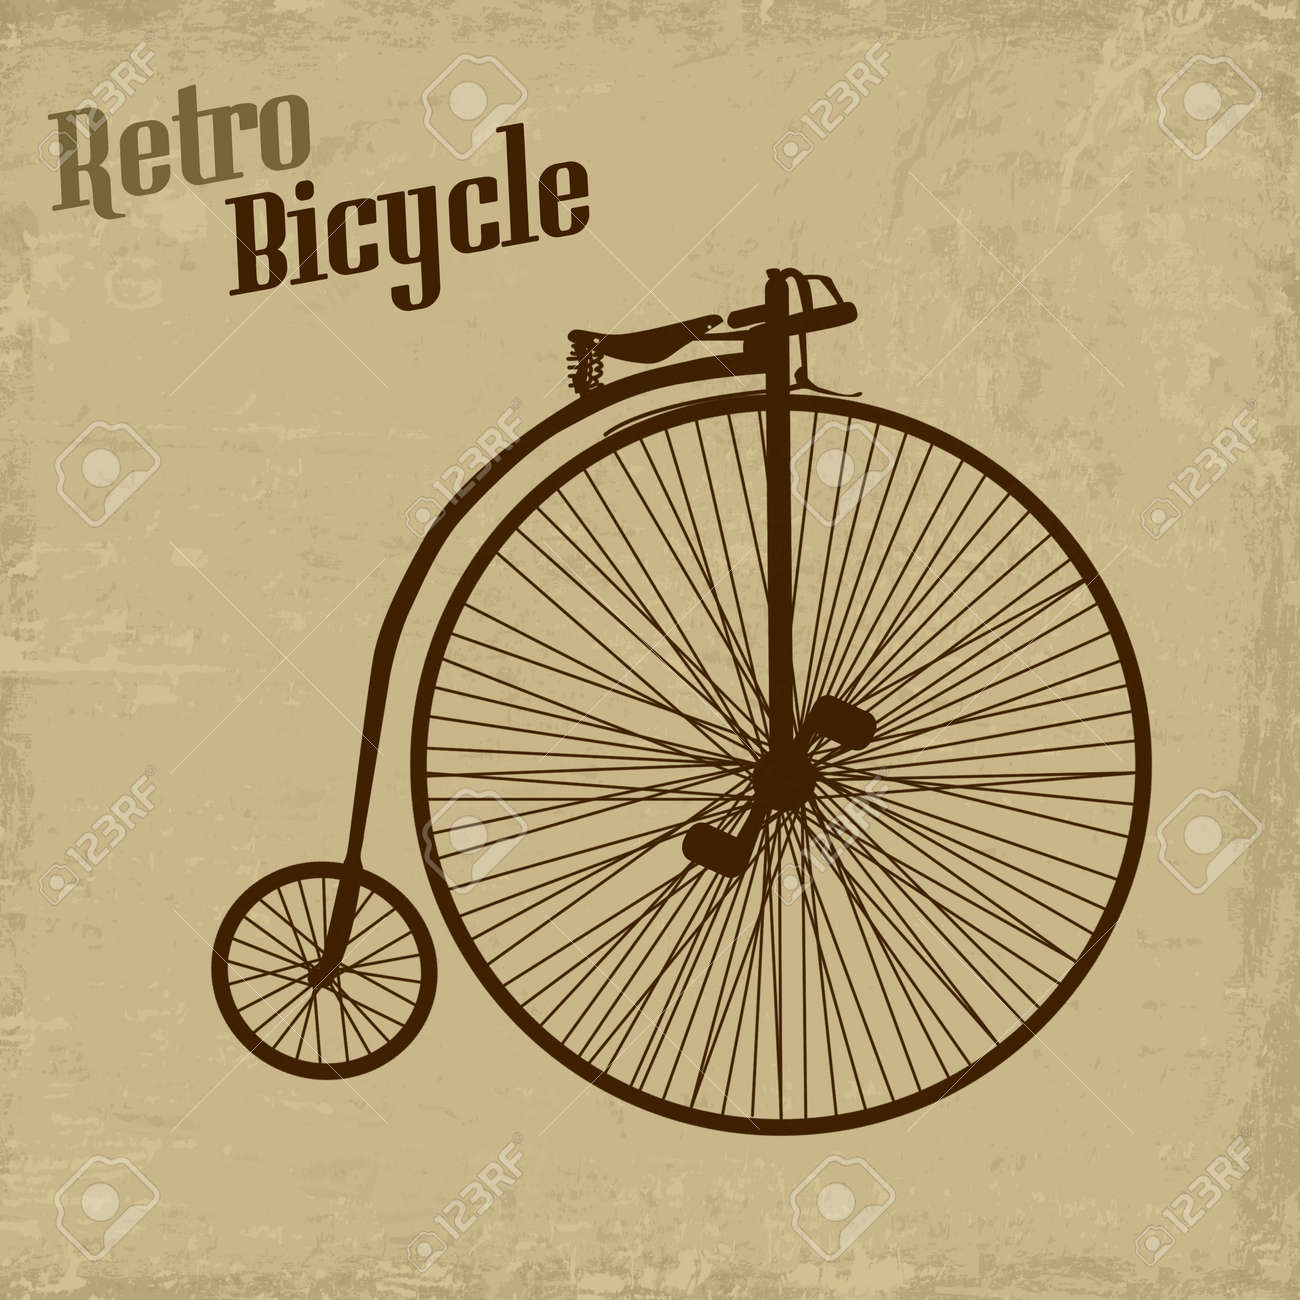 Bicycle vintage grunge poster, vector illustration Stock Vector - 19299180